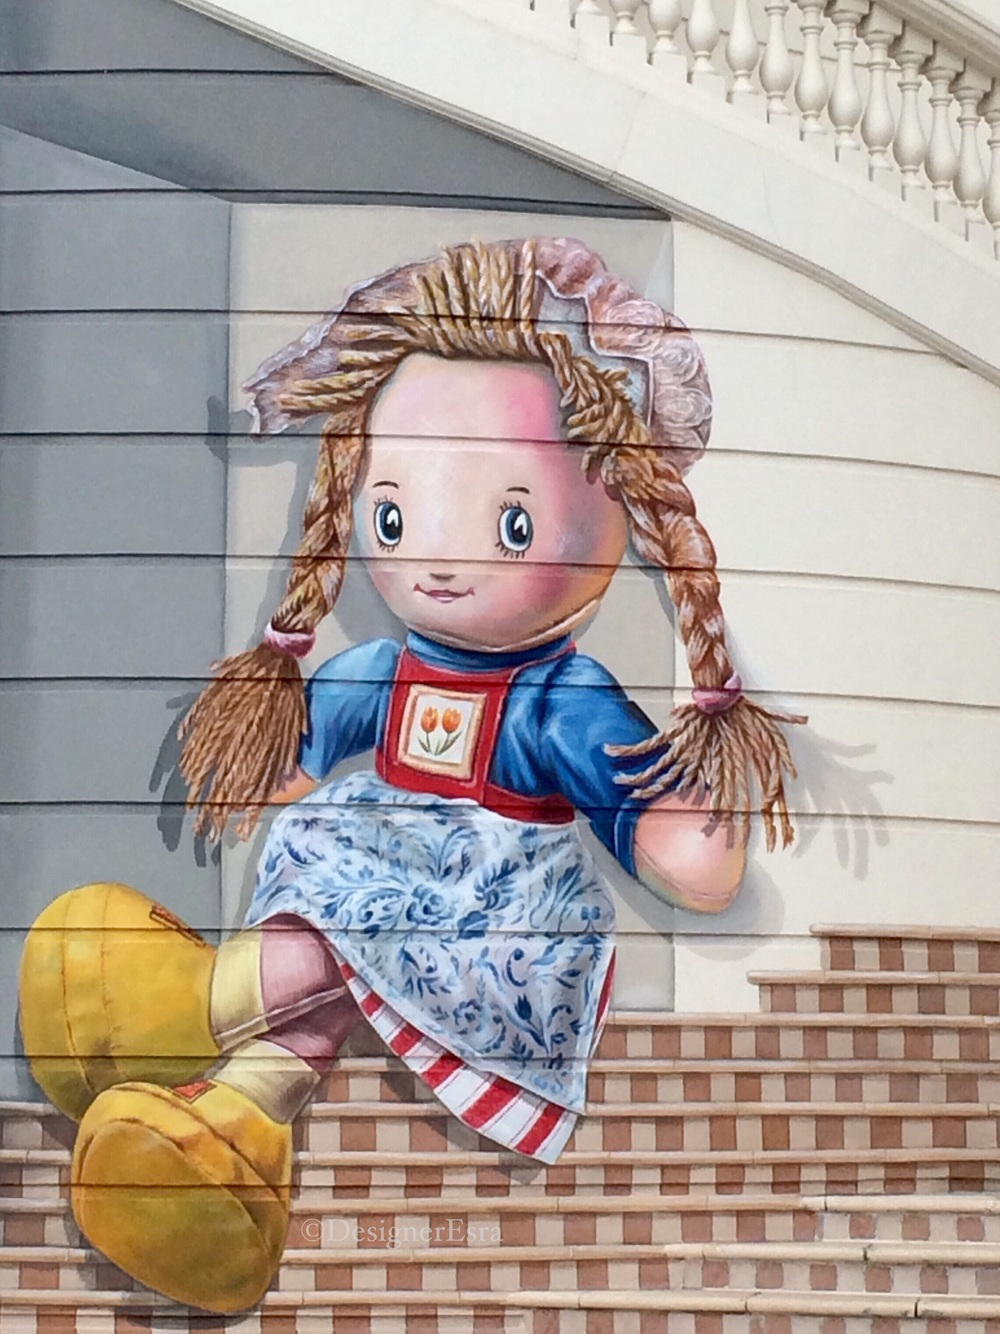 3D Doll Street Painting in Dubai